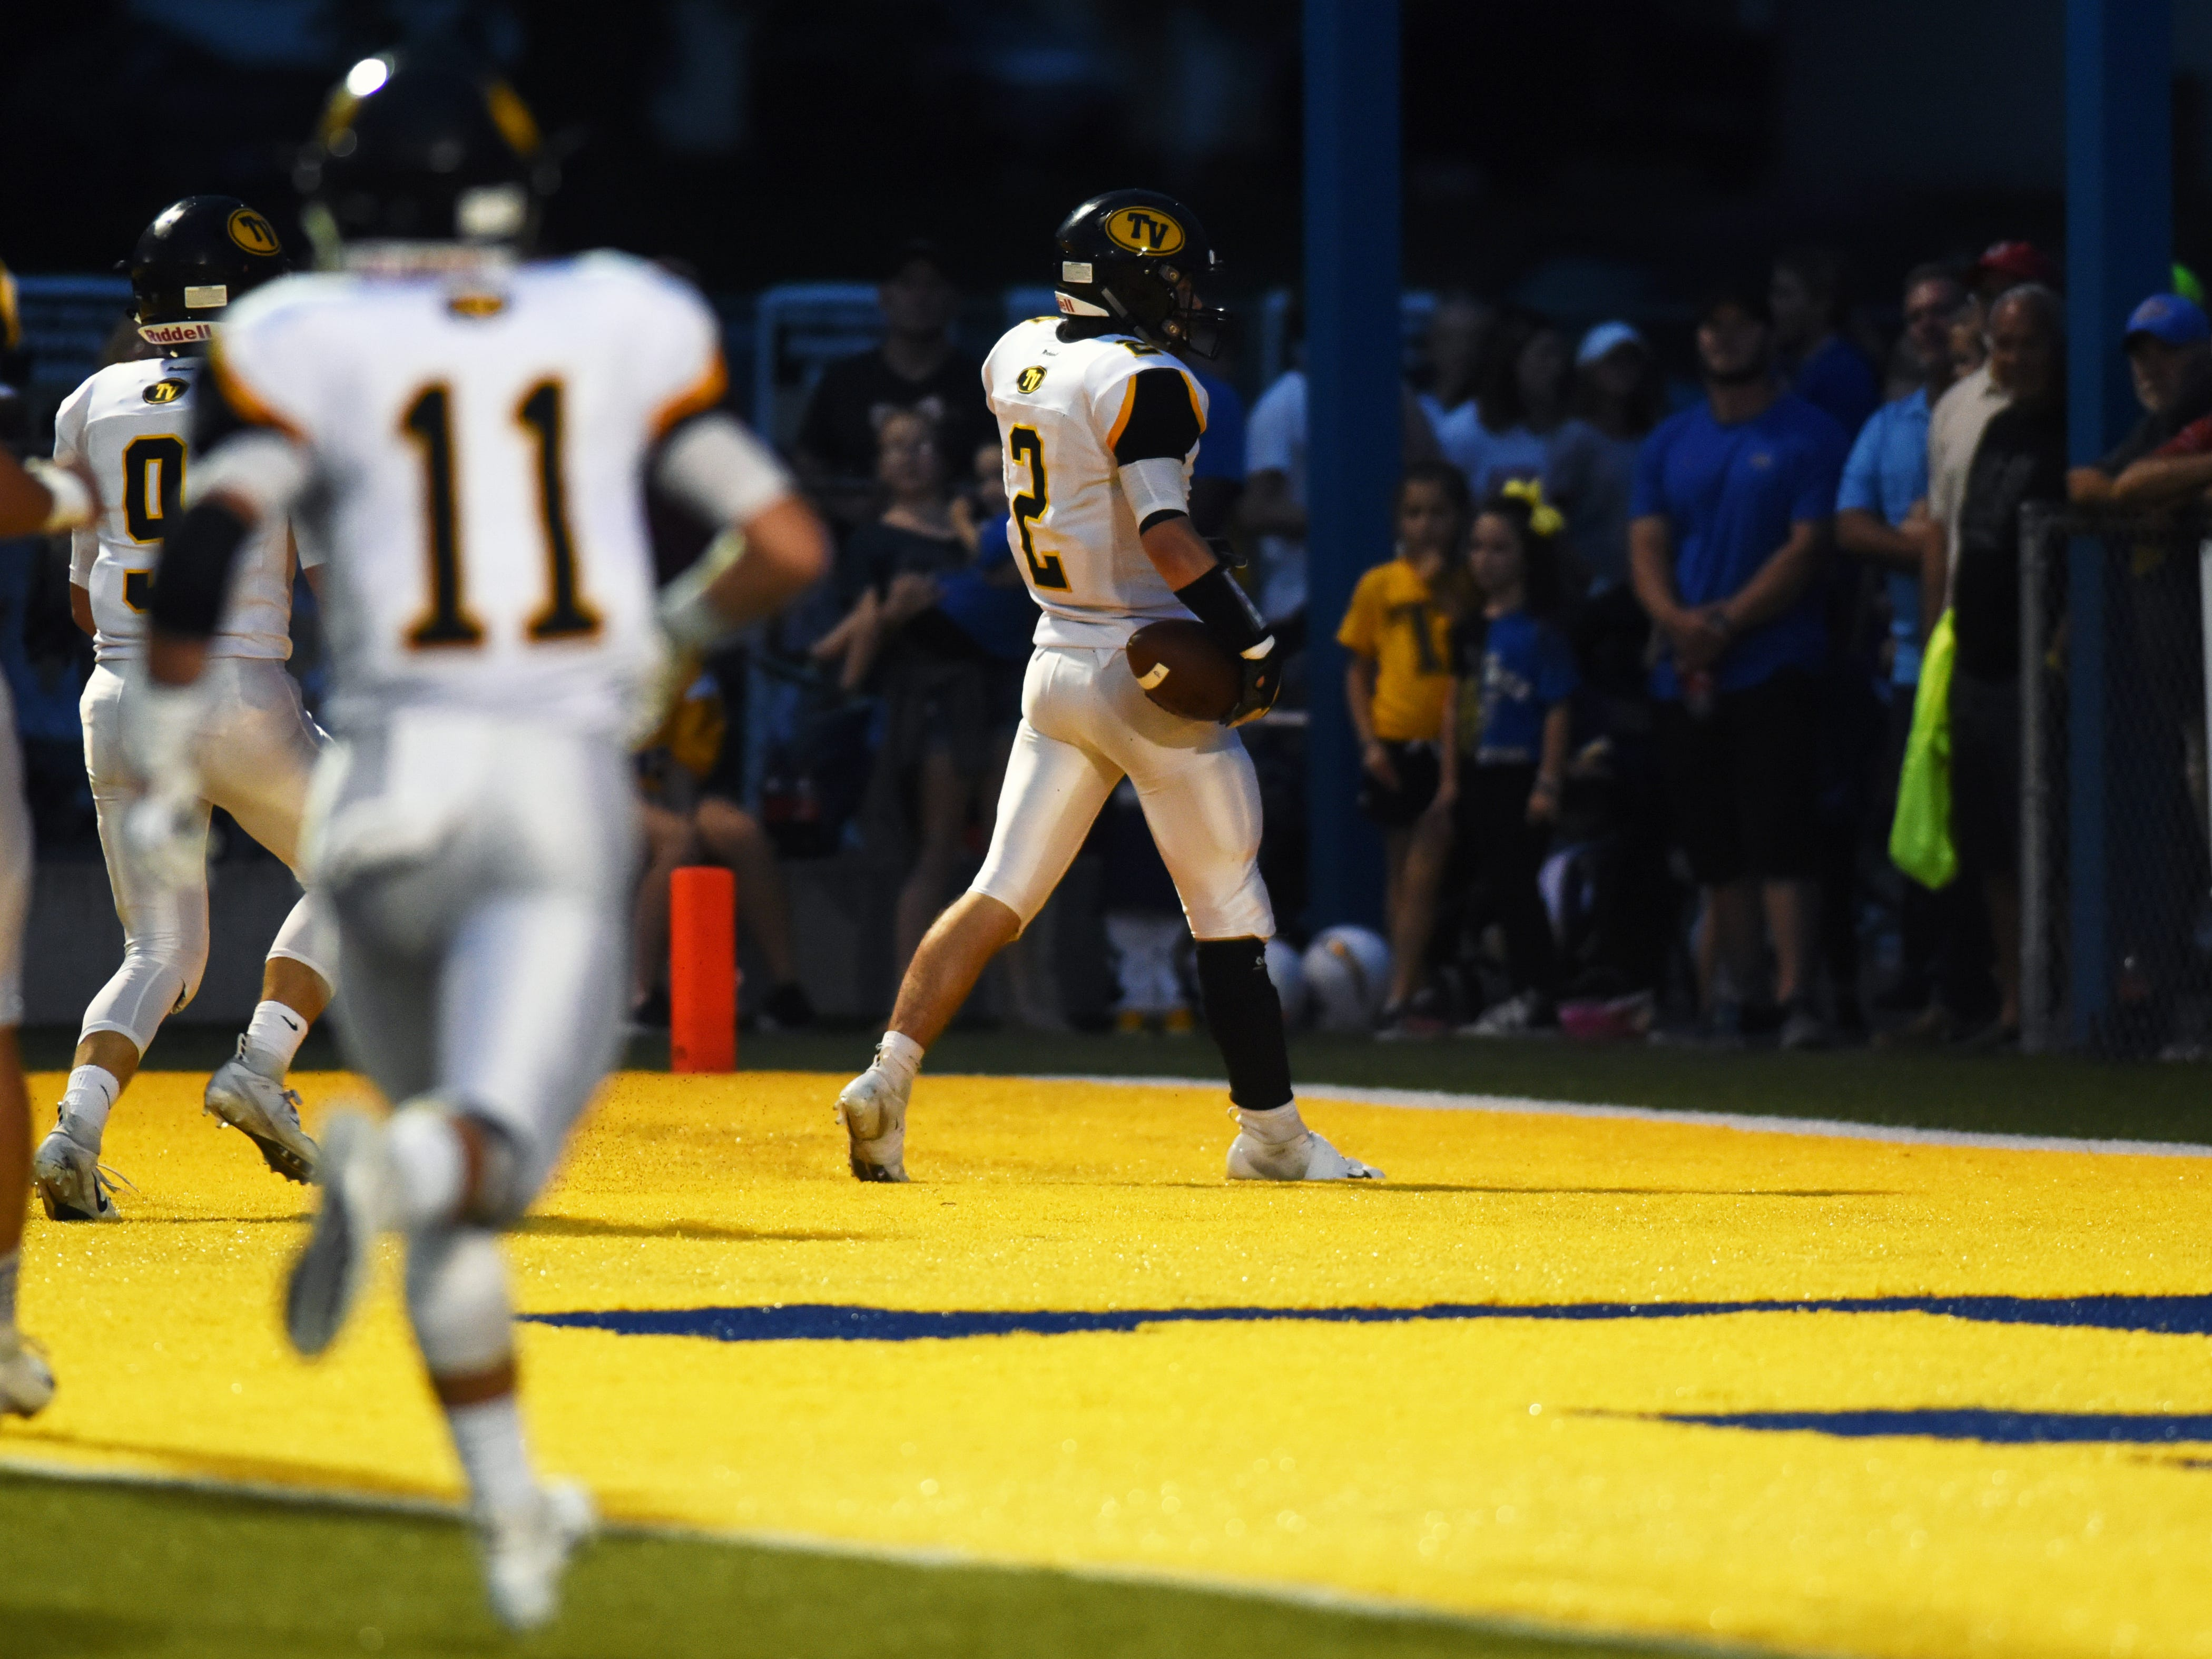 Tri-Valley's Blayze Taylor celebrates in the end zone after returning a punt for a touchdown against Philo on Friday night at Sam Hatfield Stadium.